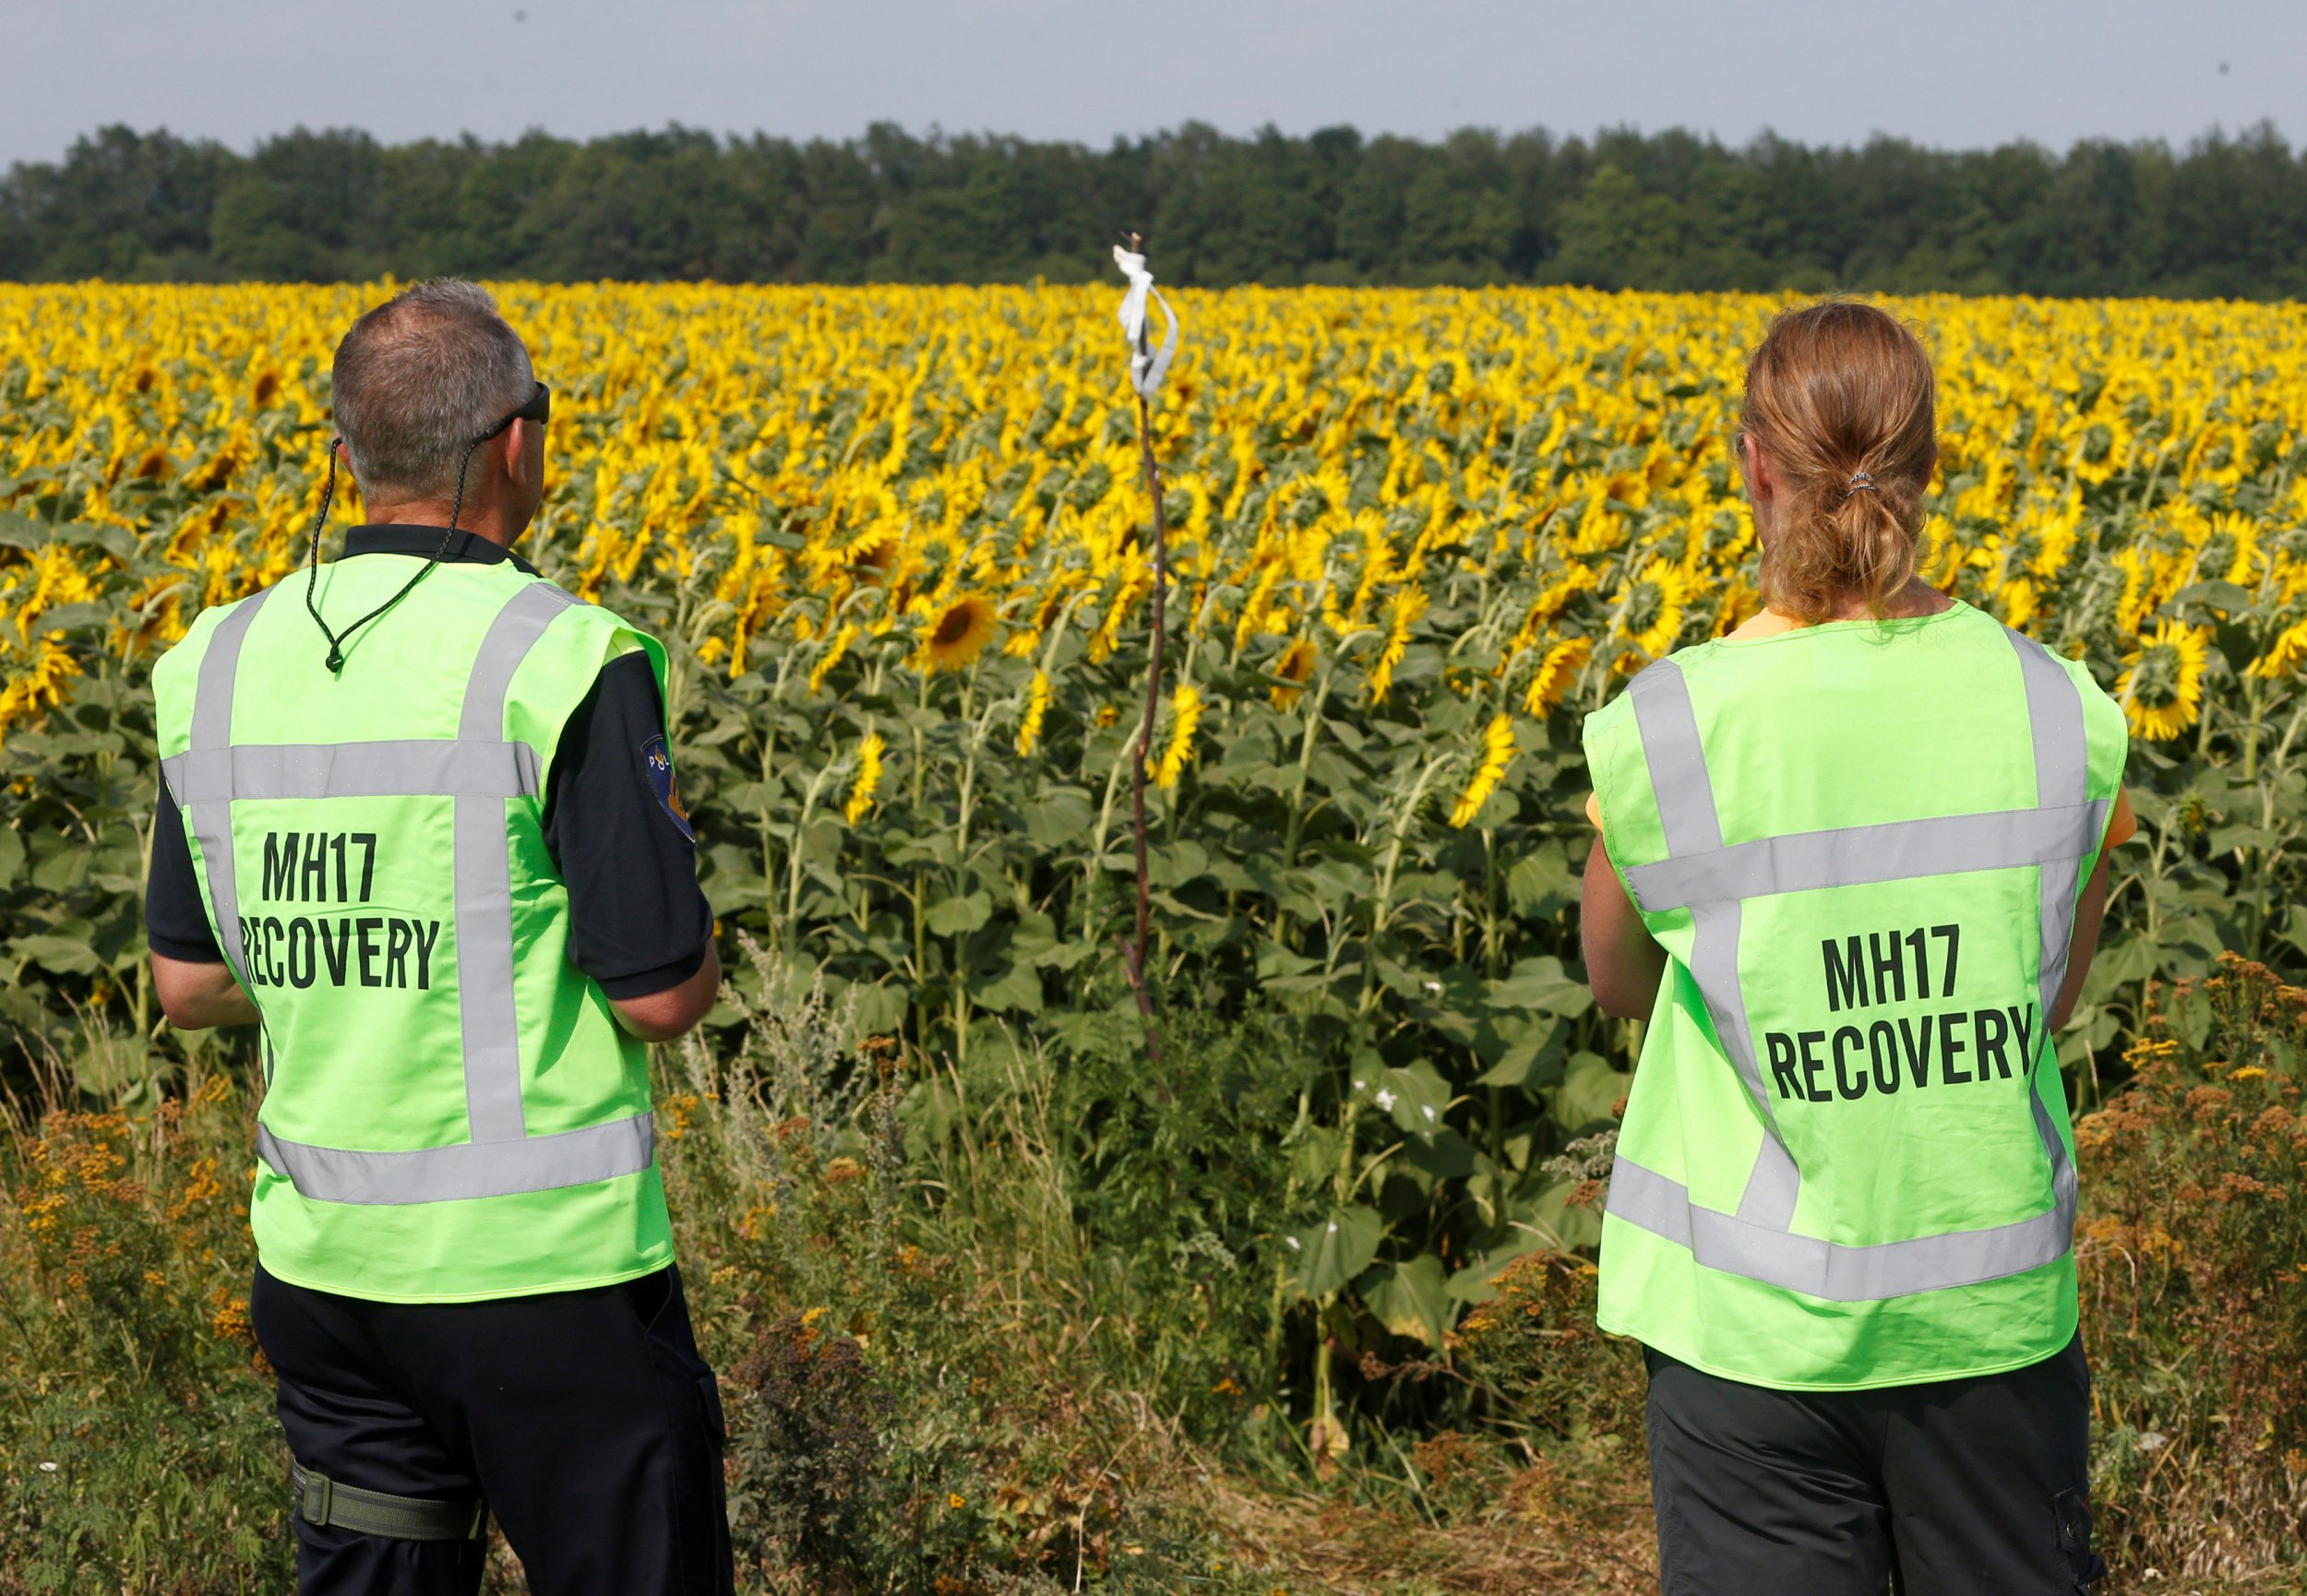 MH17 forensic experts